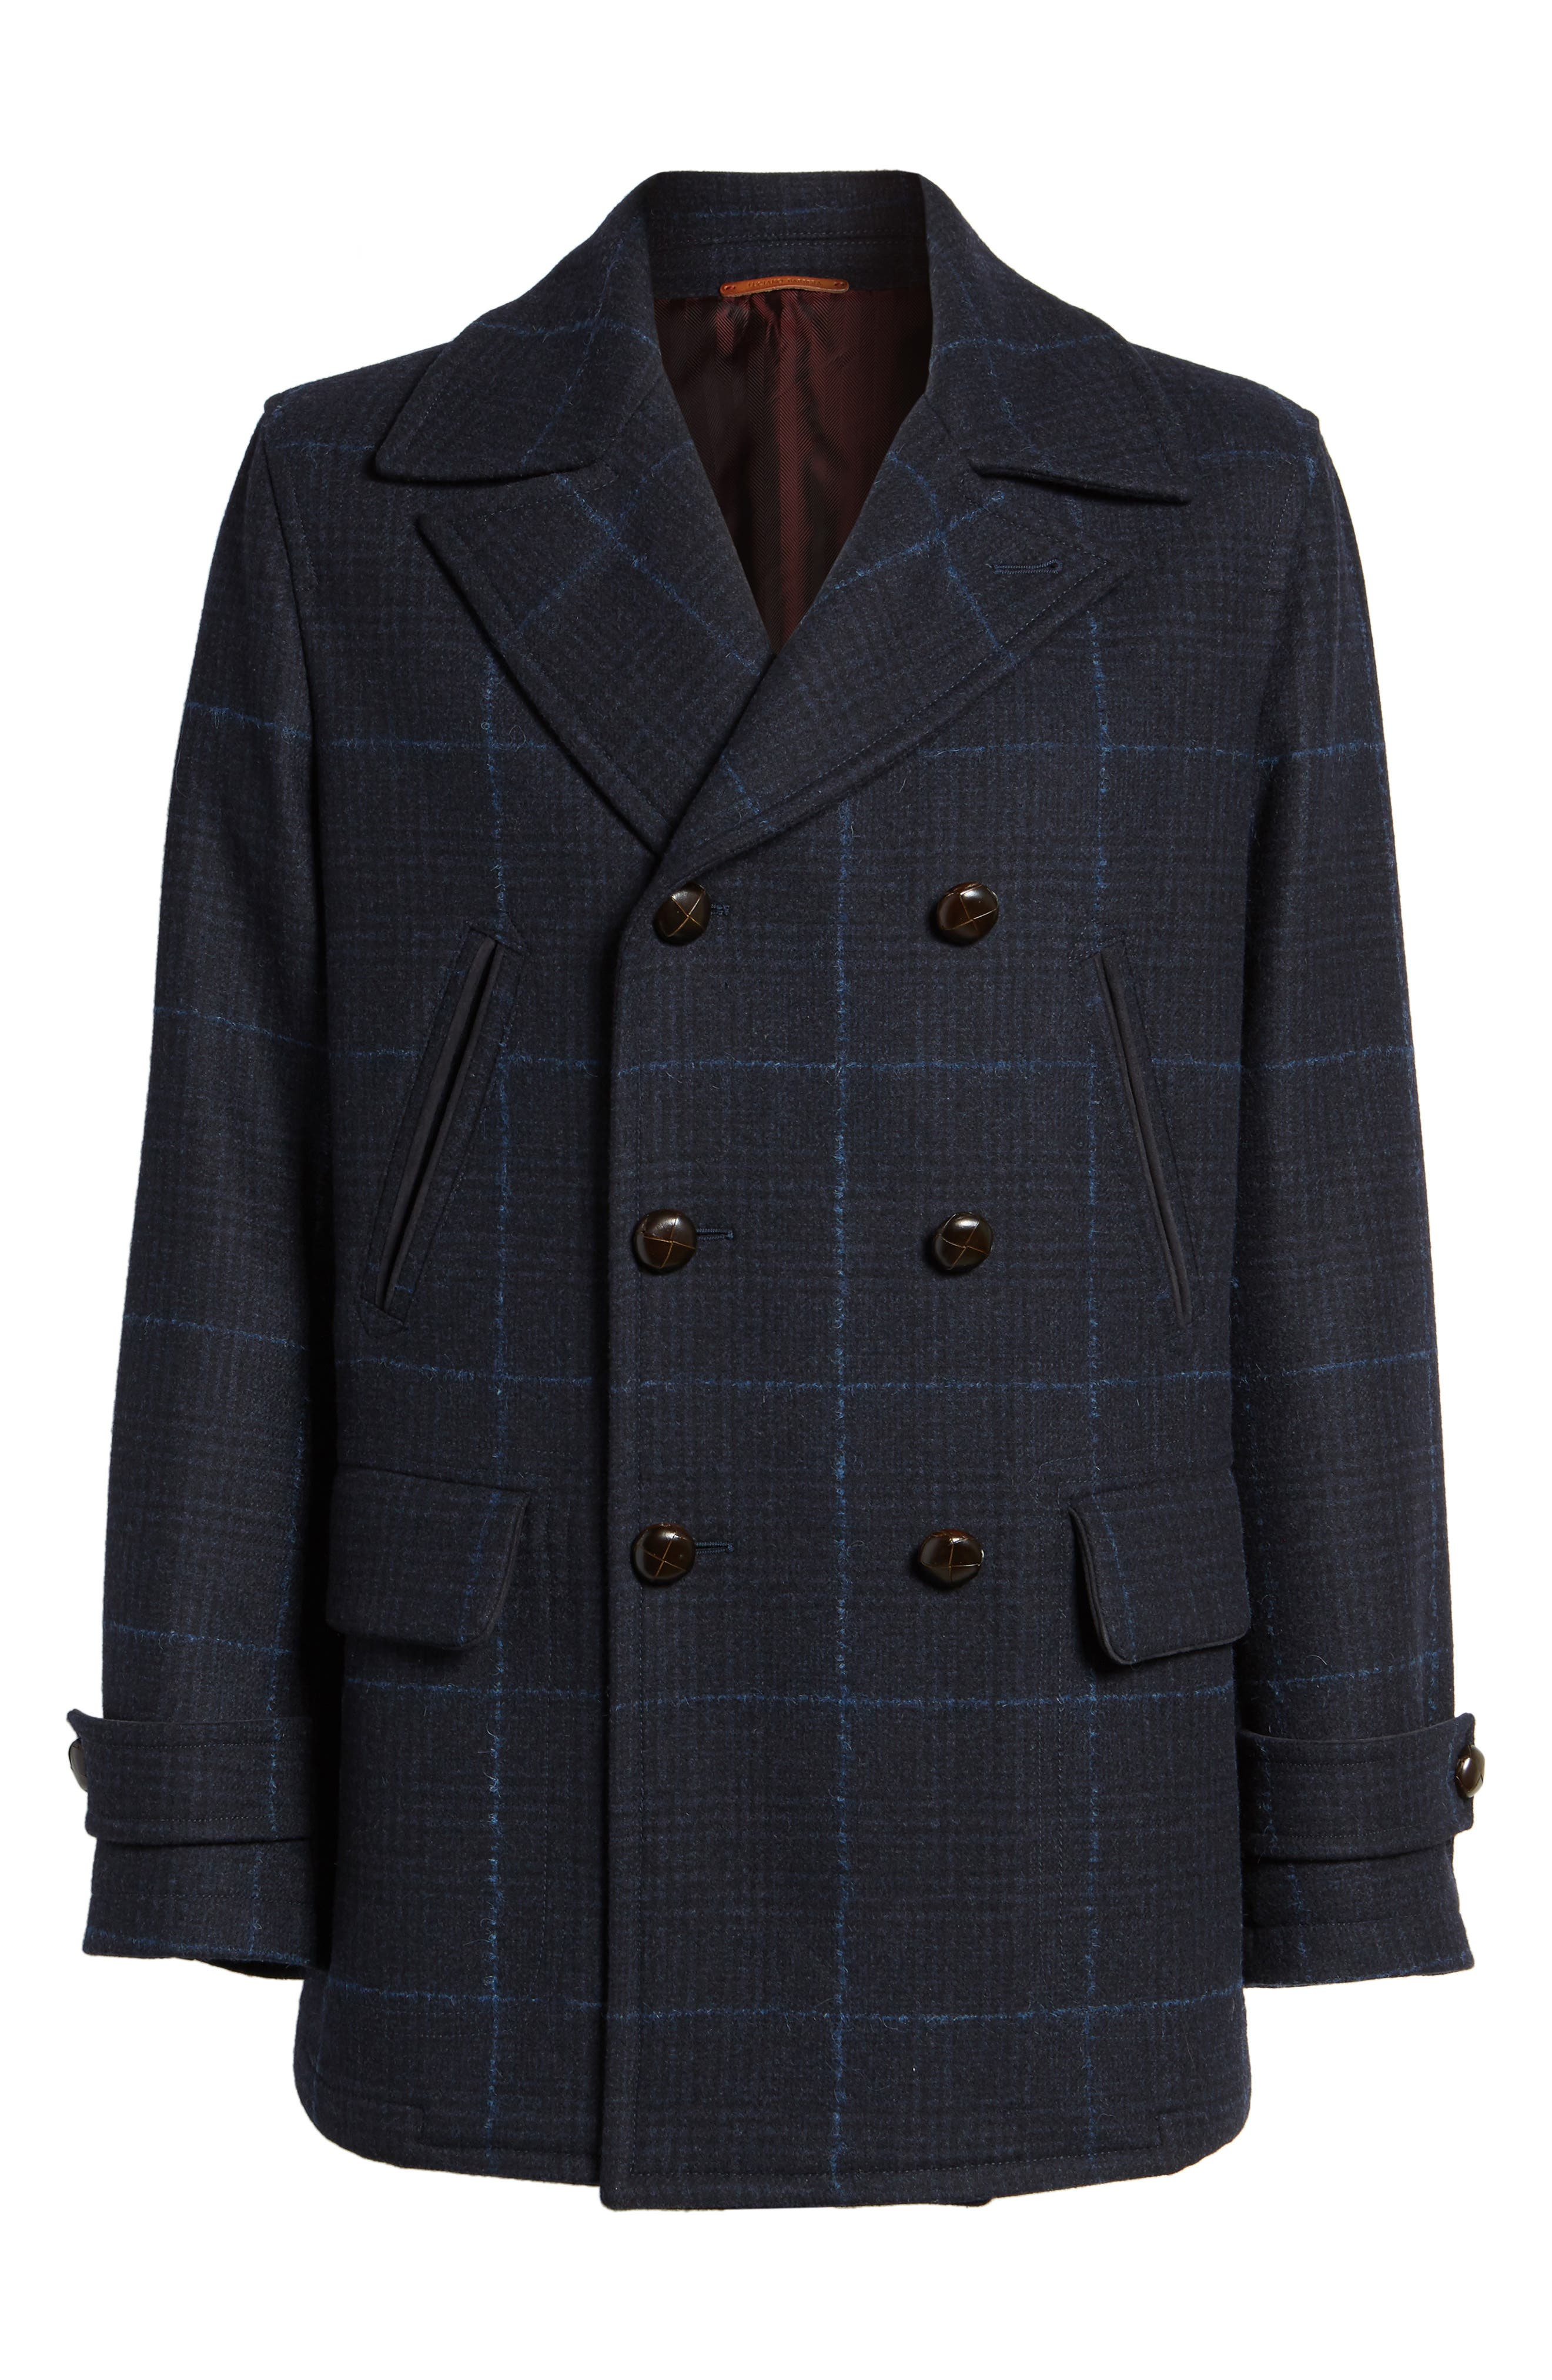 Wool Plaid Peacoat,                             Alternate thumbnail 6, color,                             Navy